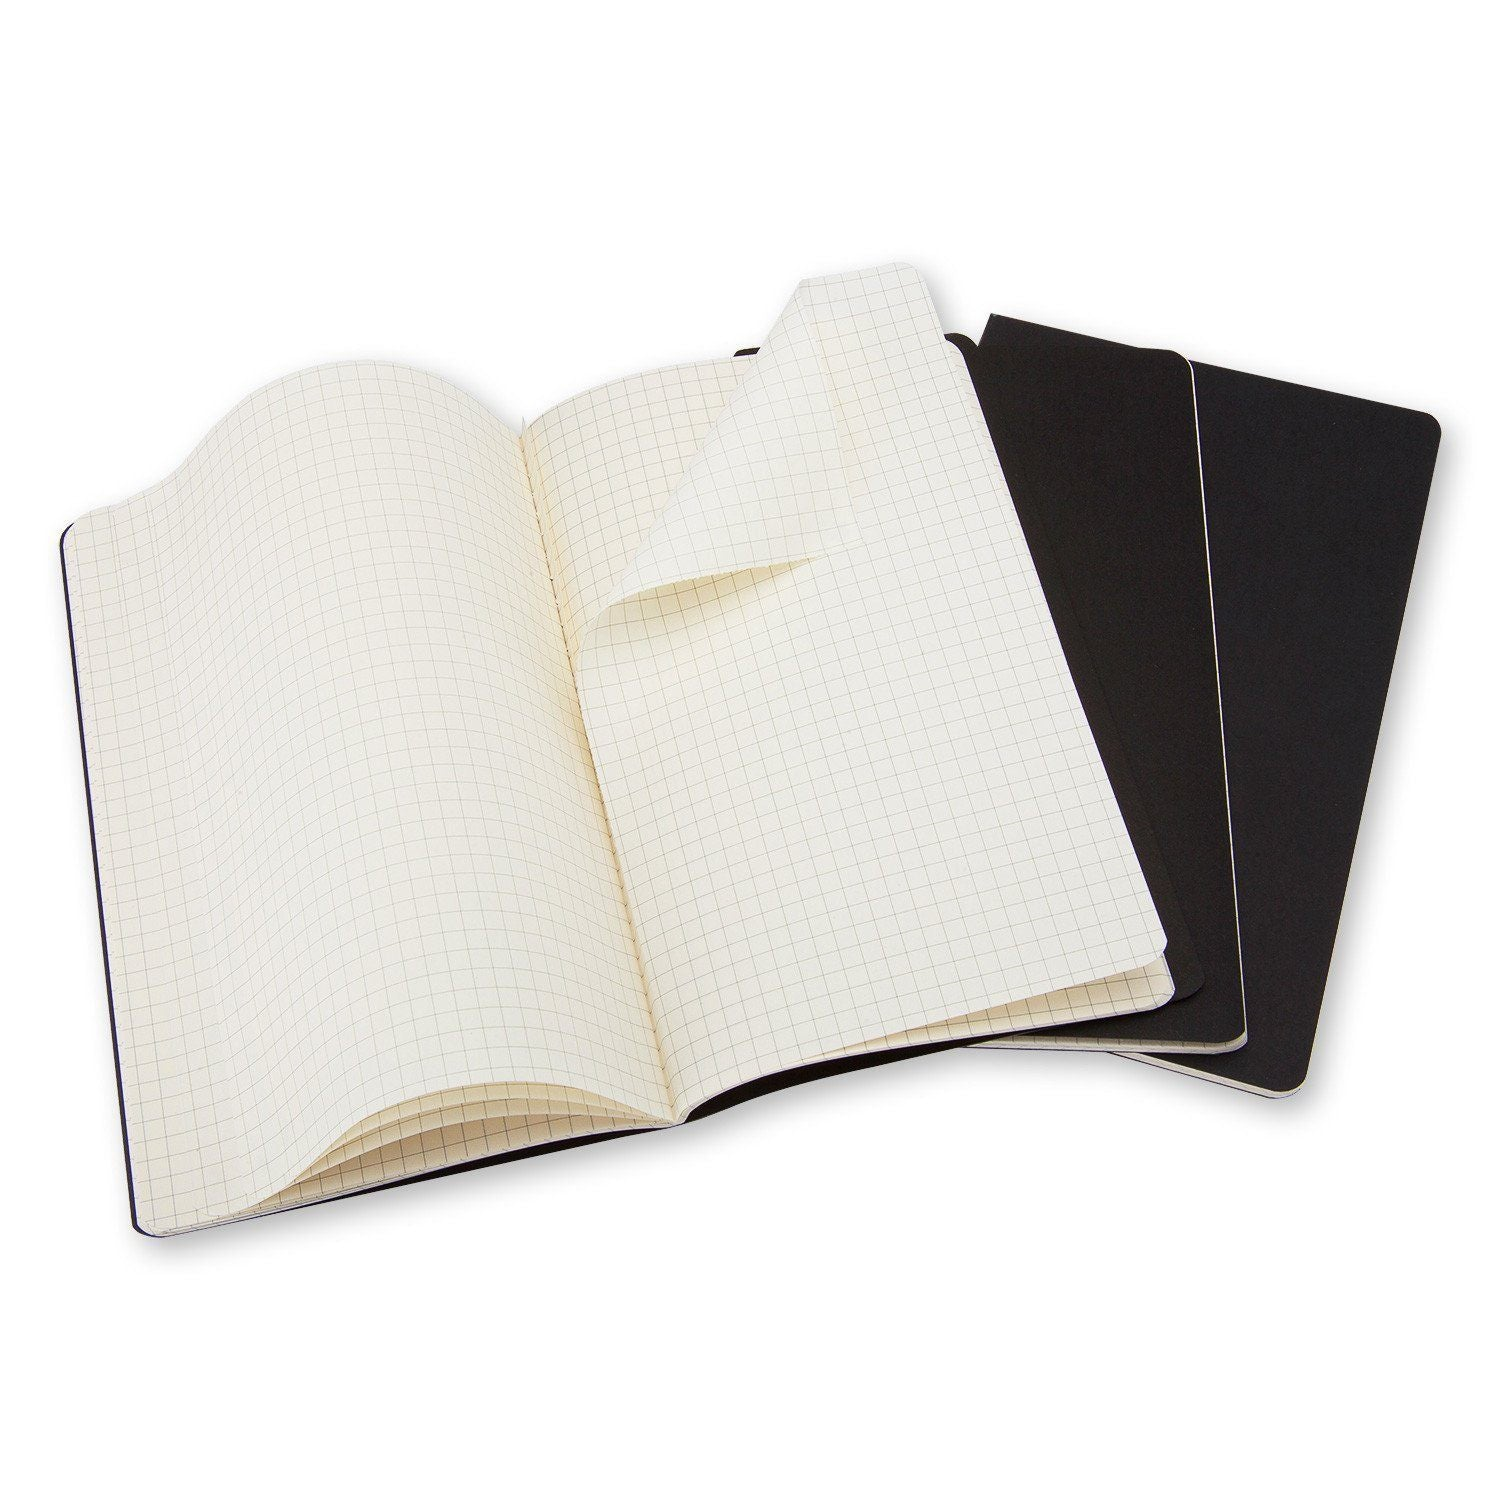 MOLESKINE® CAHIER JOURNAL - SET OF 3 PARTNER PRODUCT MOLESKINE Pocket Square Black